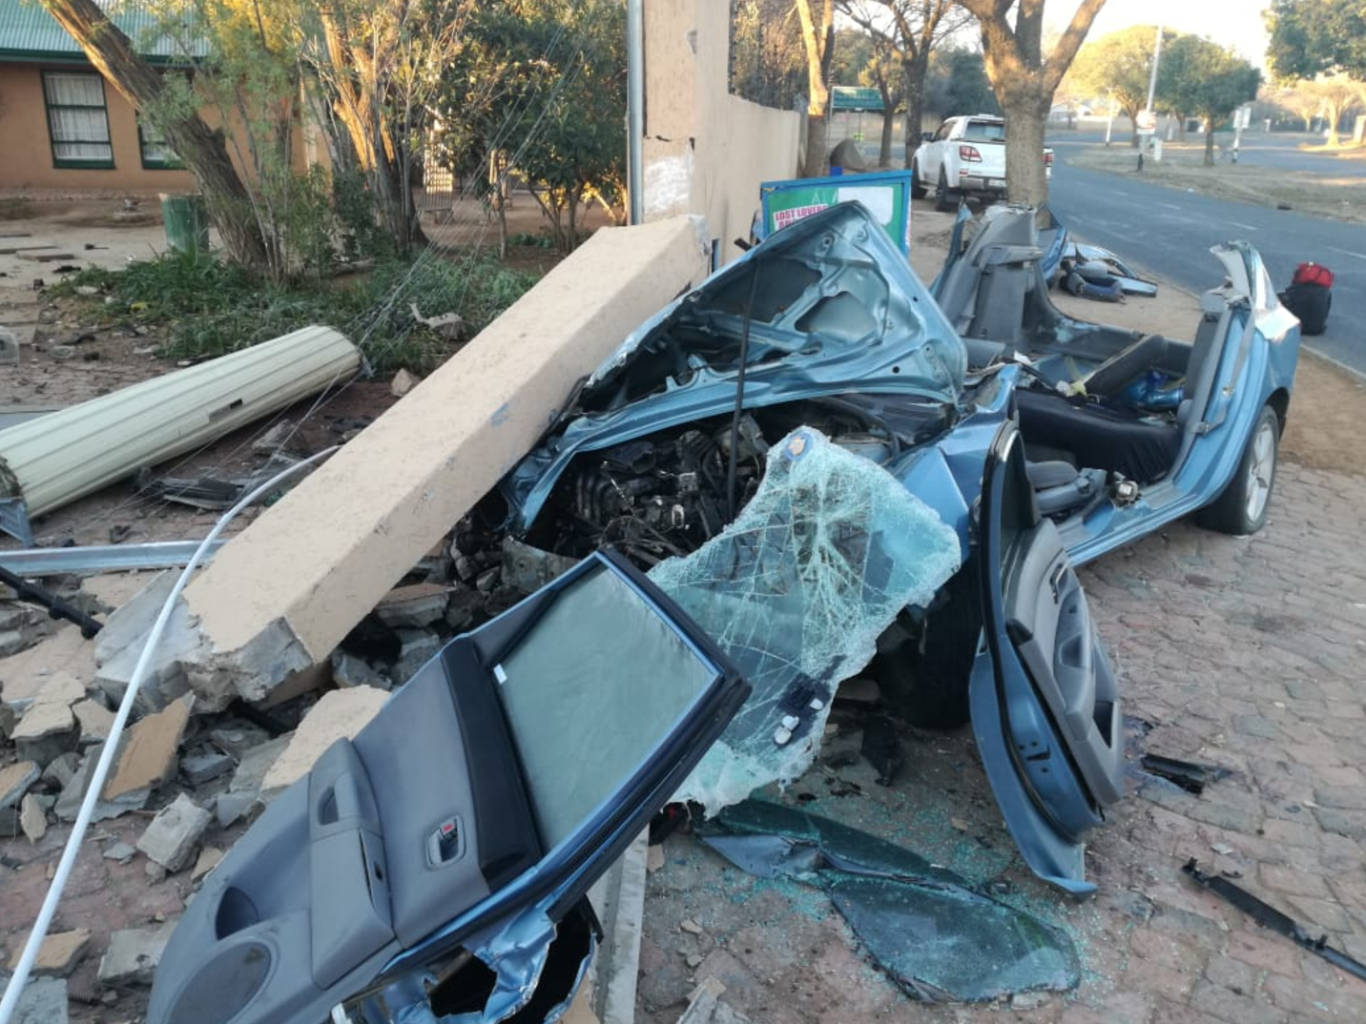 BLOEMFONTEIN-Car-crashes-into-wall-leaving-two-seriously-injured_  Car crashes into wall leaving two seriously injured on President Paul Kruger Avenue in Bloemfontein BLOEMFONTEIN Car crashes into wall leaving two seriously injured